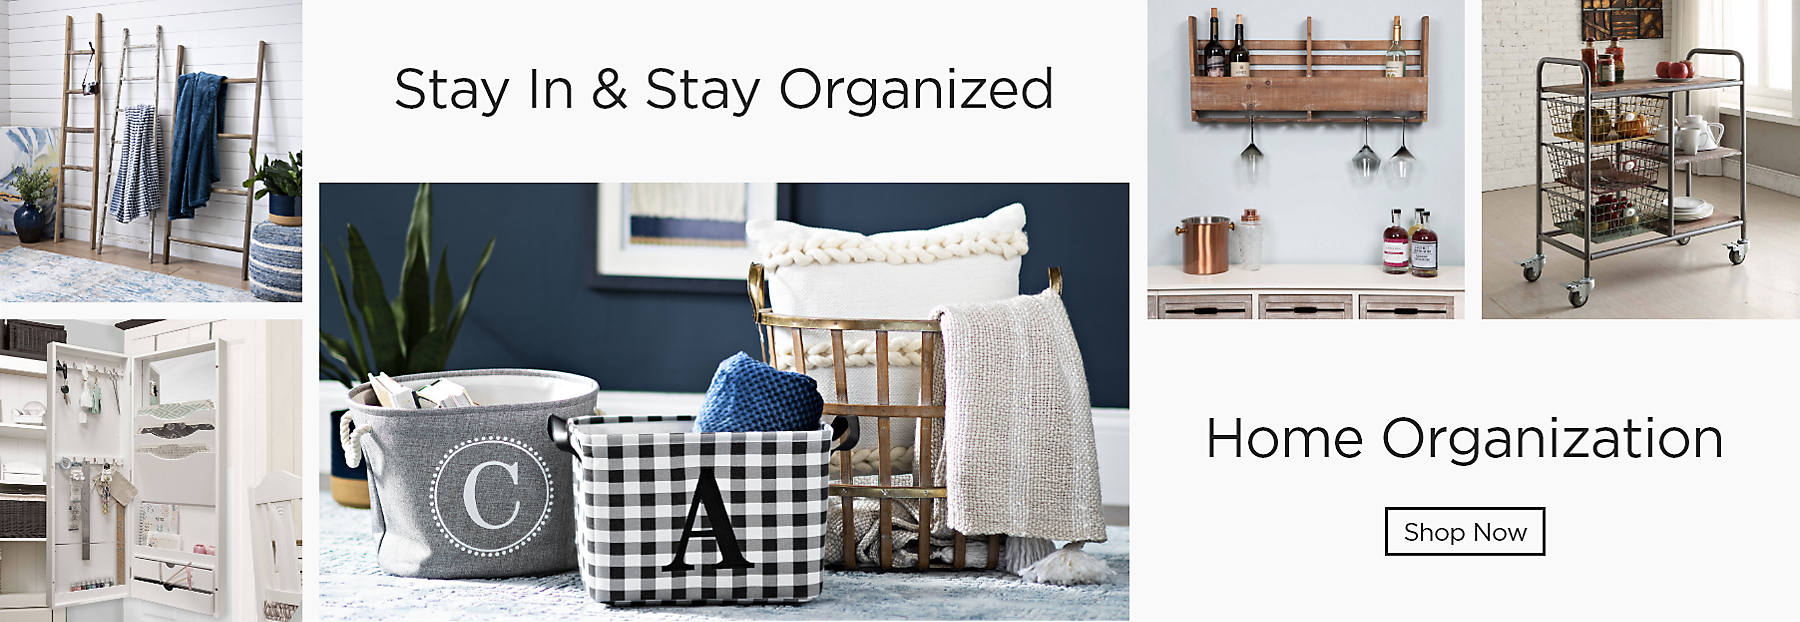 Stay in and stay organized Home organization Shop Now